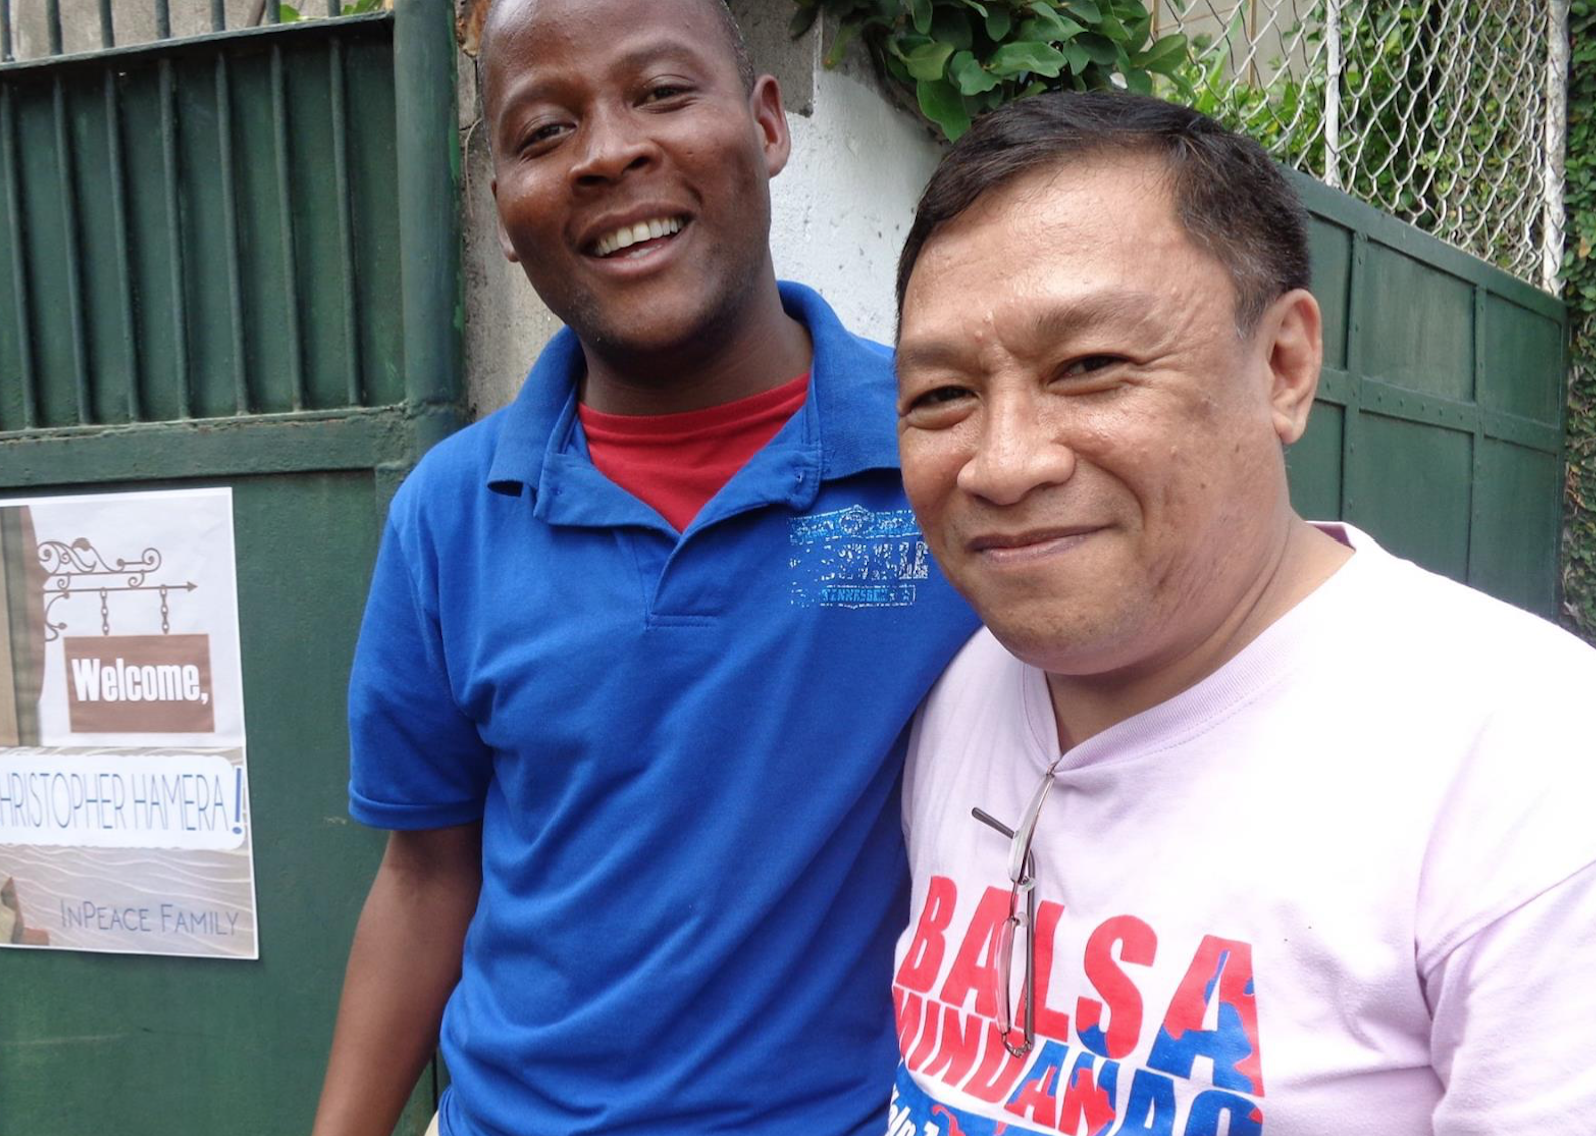 Christopher Hamera, left, welcomed by a UMC member when he arrived in Davao City, Philippines.